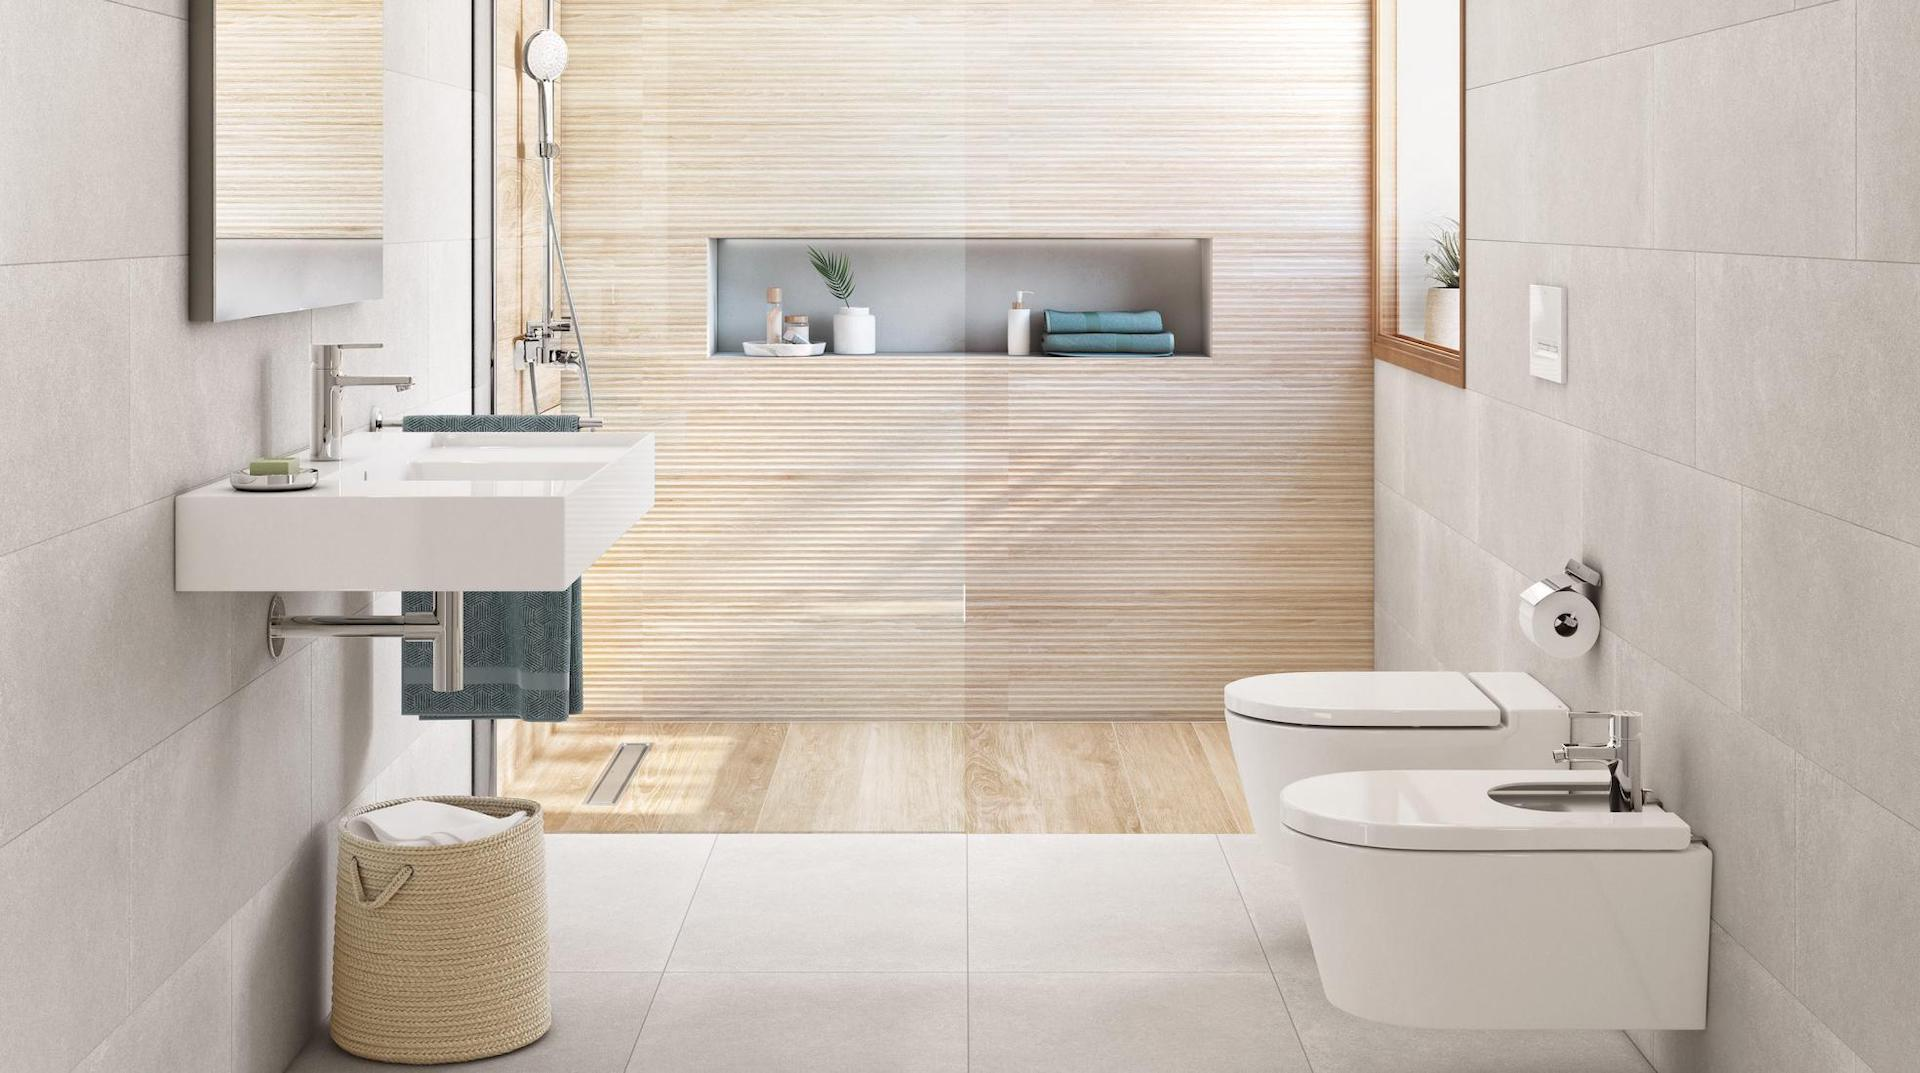 Wood finished bathroom tiles in an HDB bathroom for a Nordic home spa-inspired look